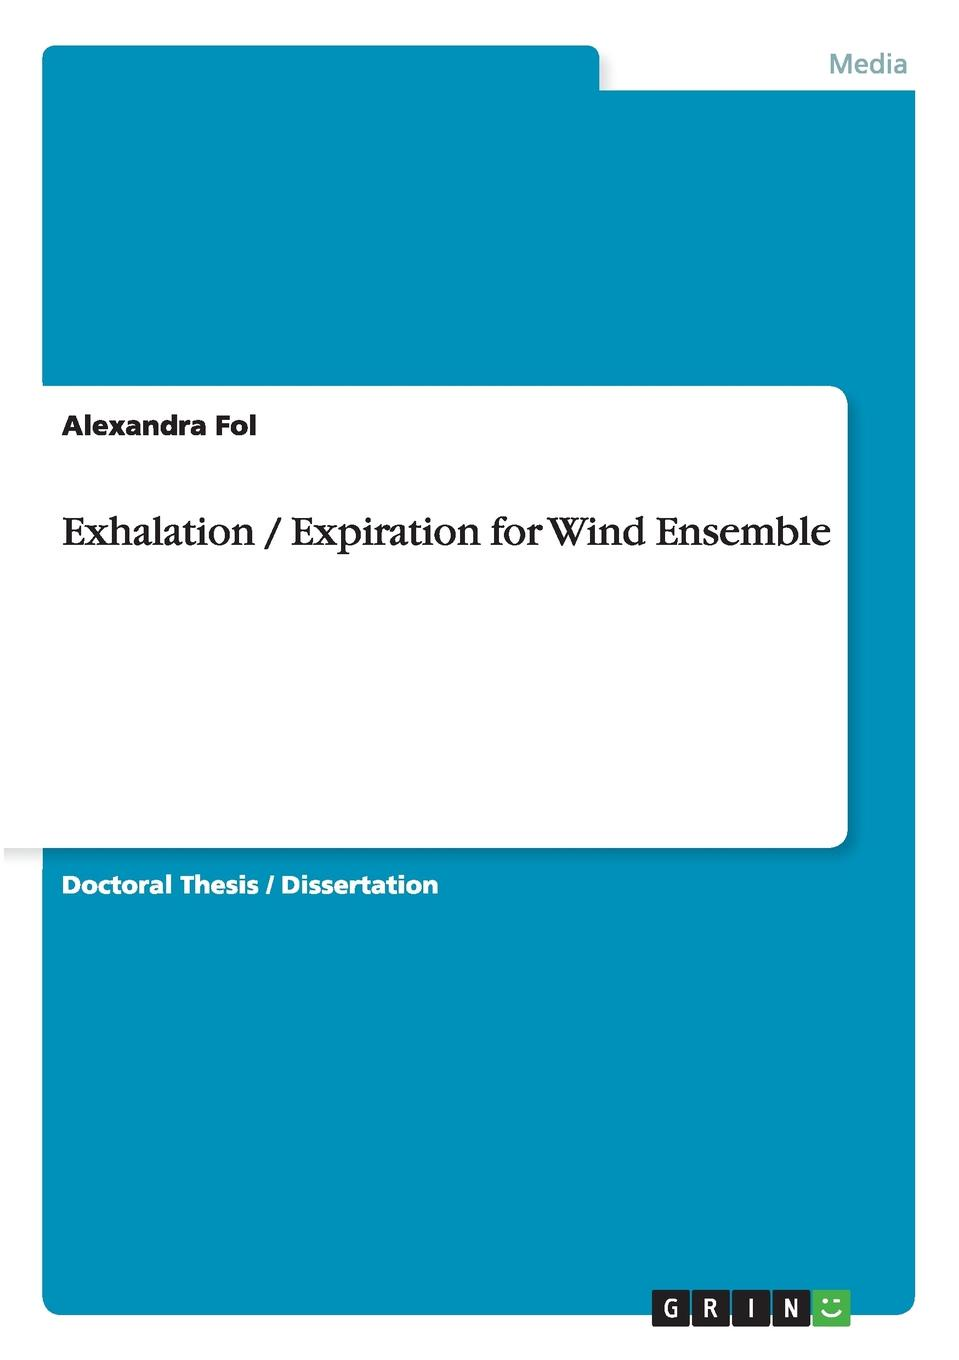 Alexandra Fol Exhalation / Expiration for Wind Ensemble mccance and widdowson s the composition of foods